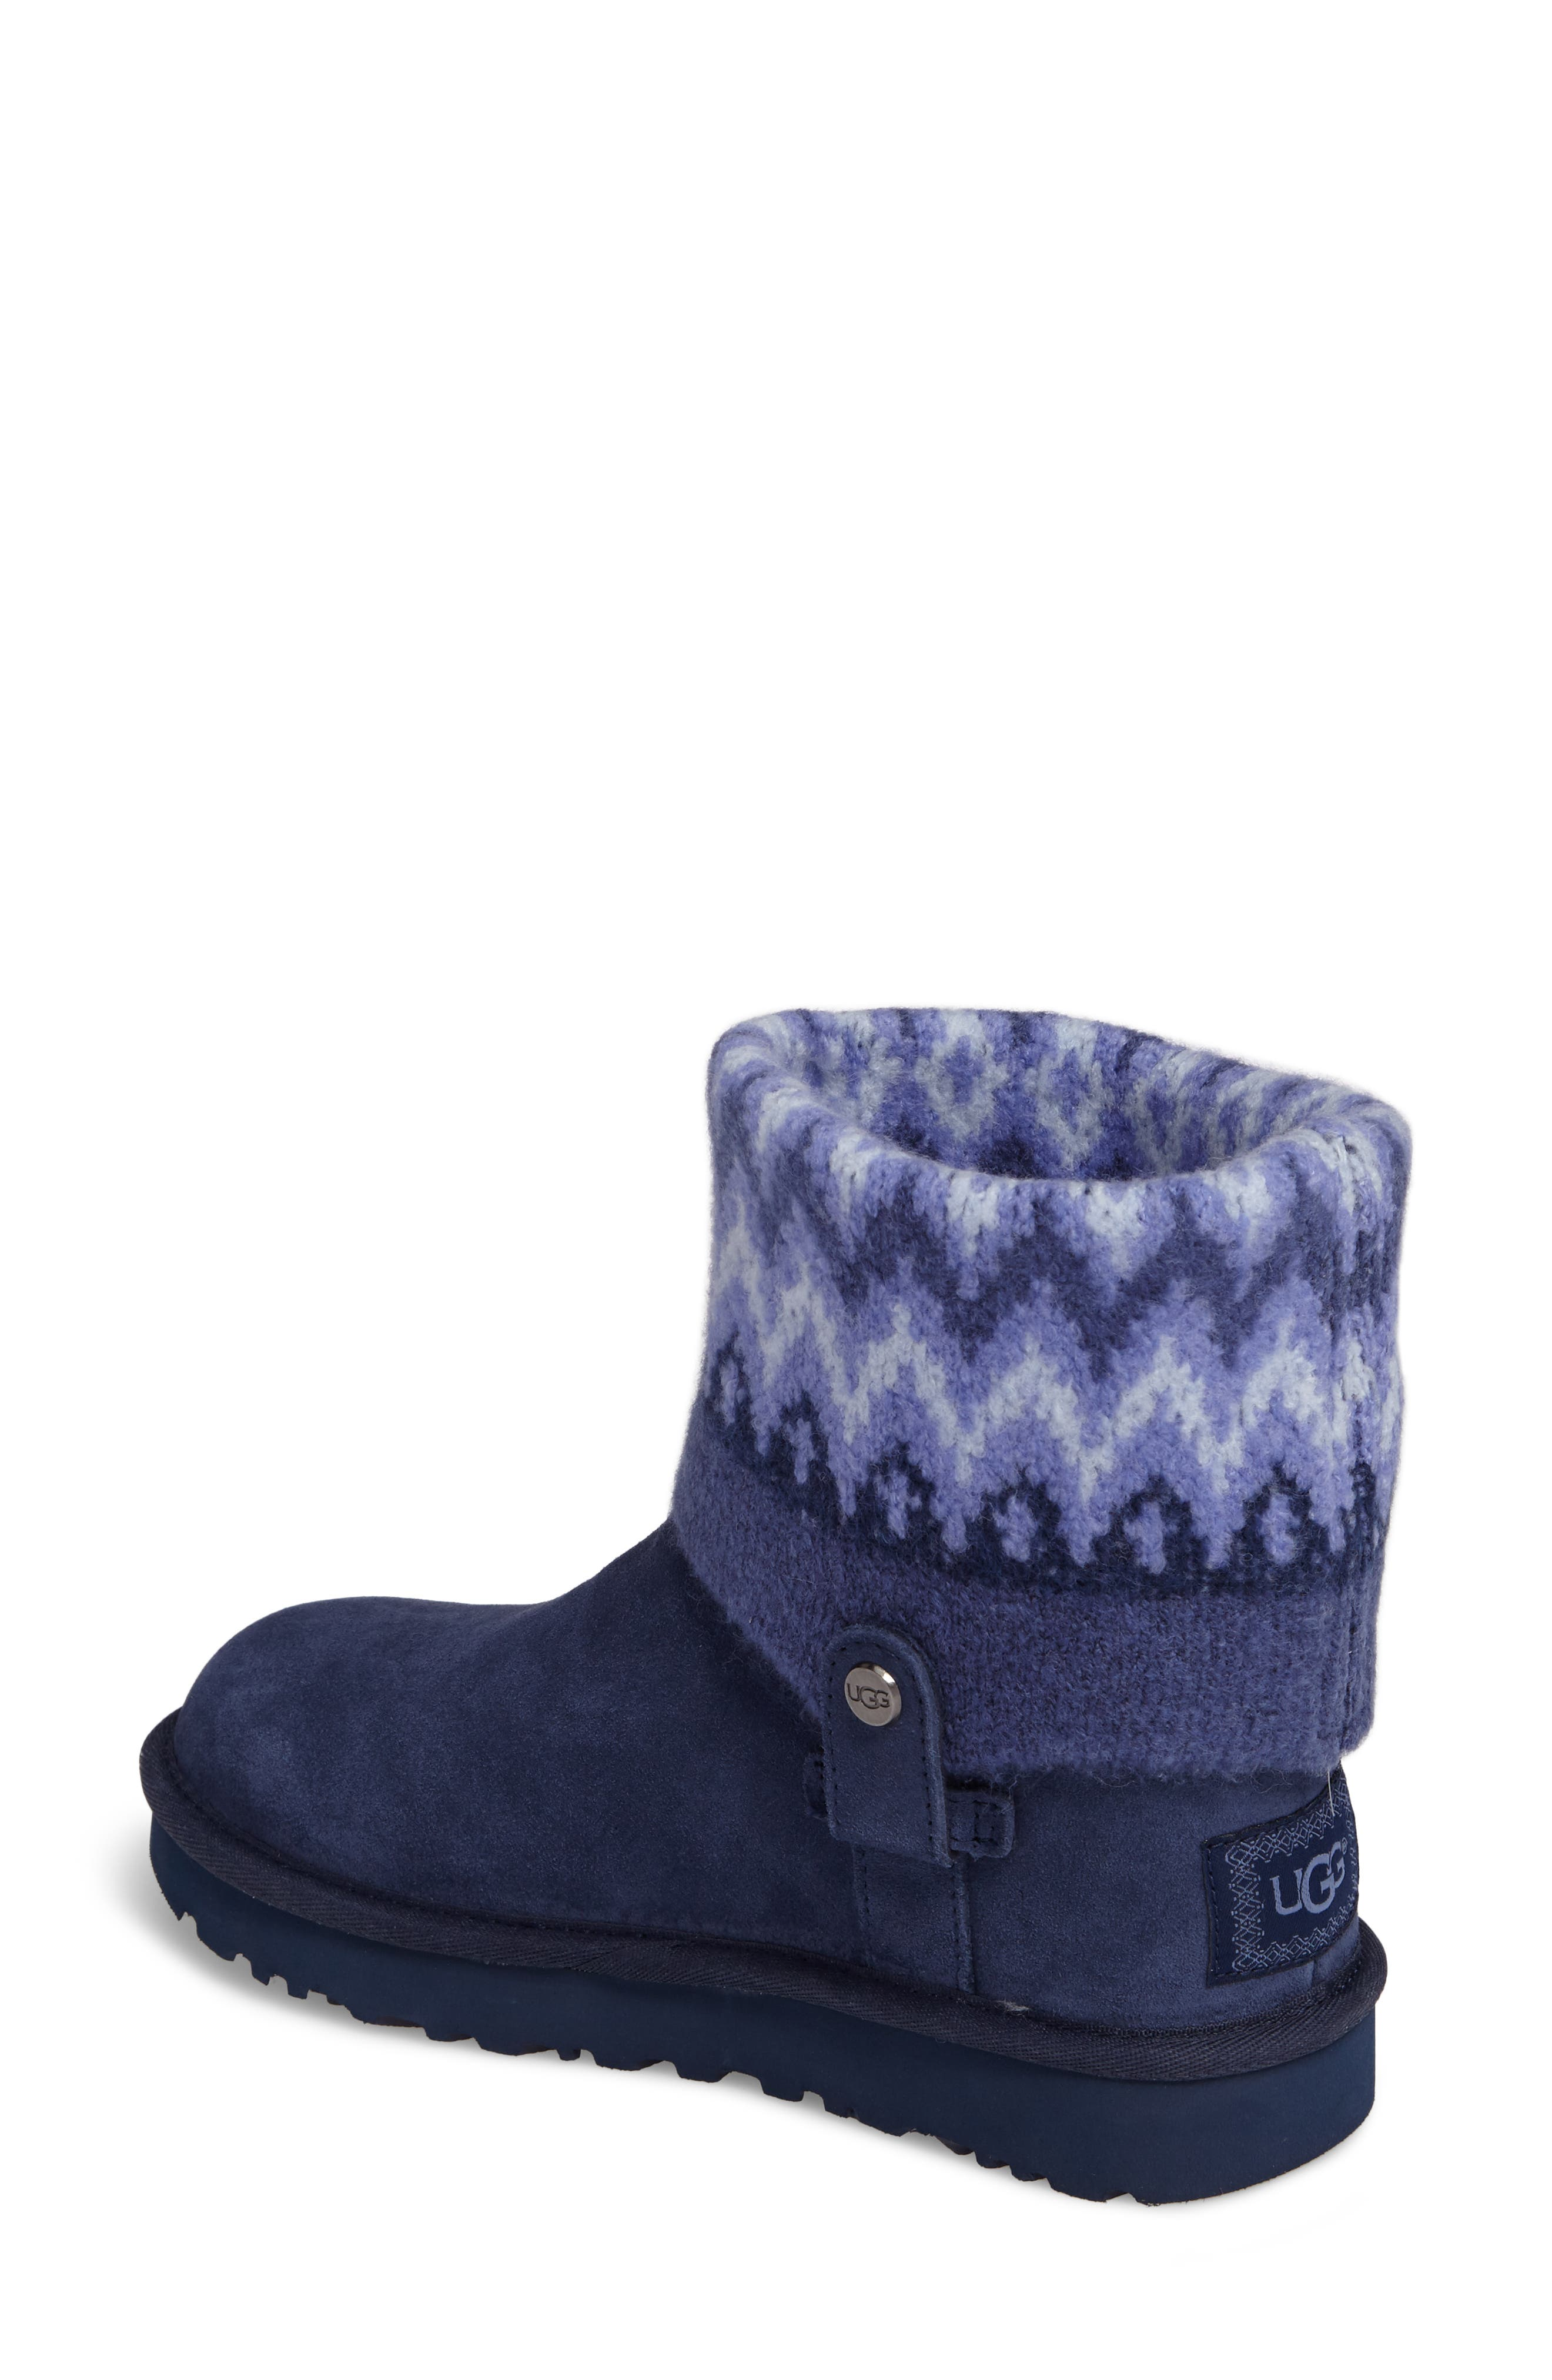 Saela Icelandic Boot,                             Alternate thumbnail 2, color,                             Navy Suede